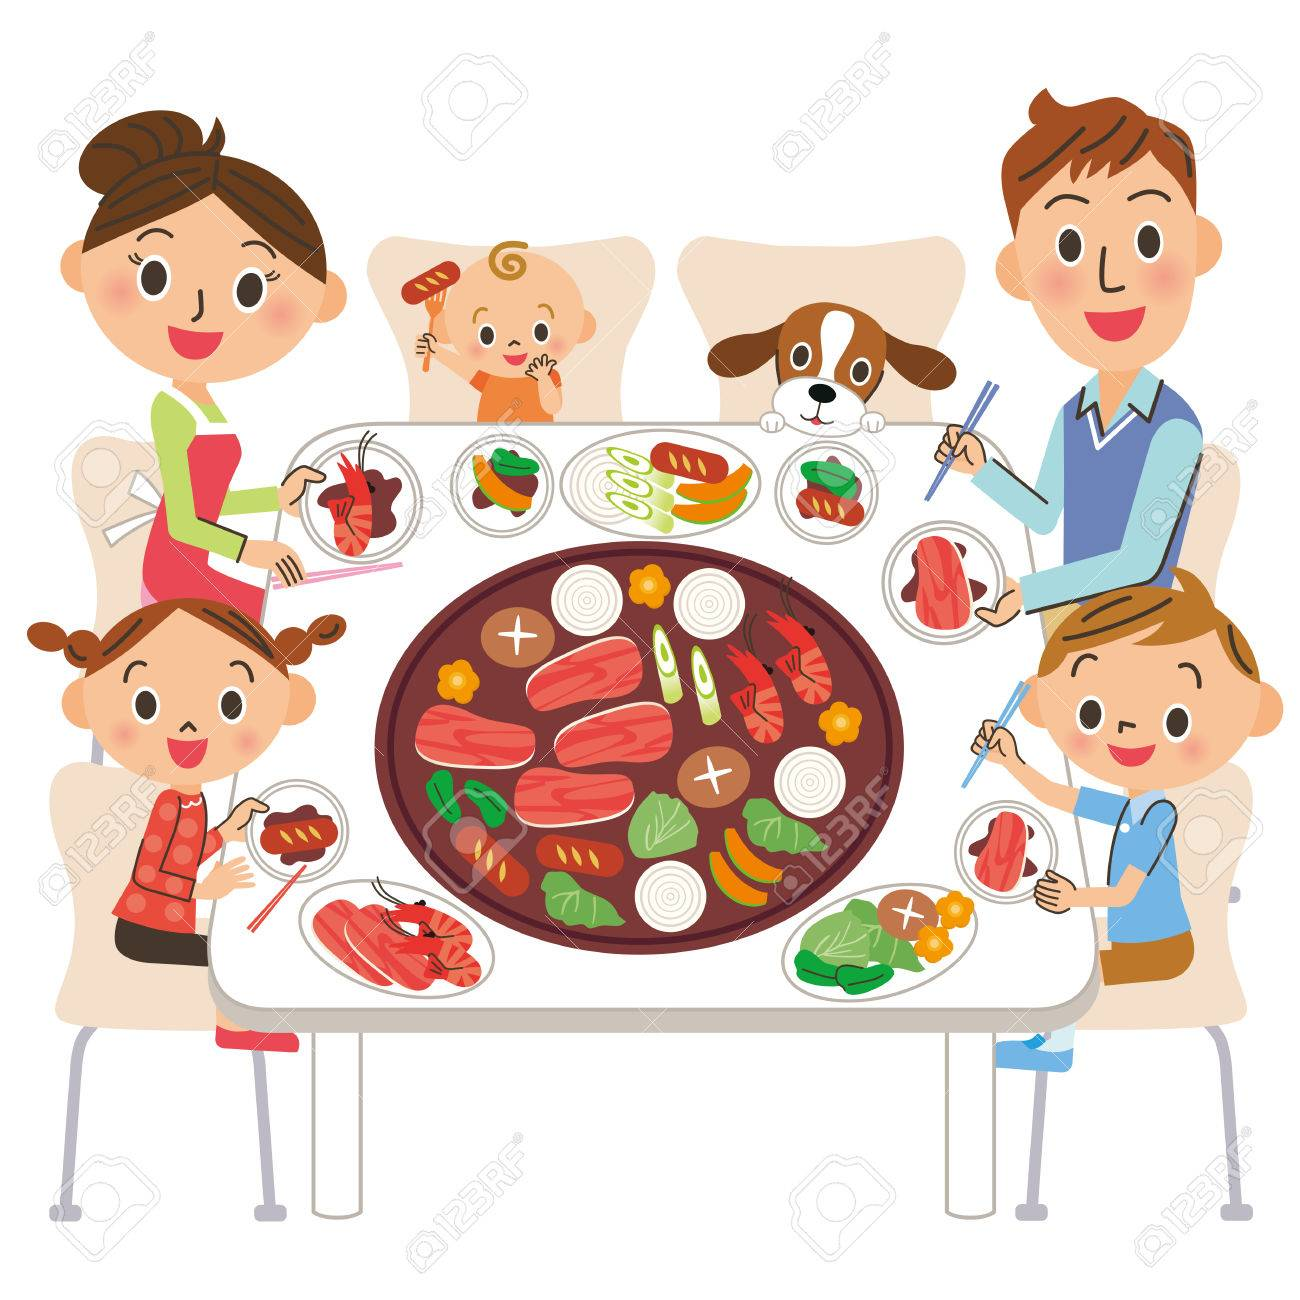 family who eats roasted meat - 54779345